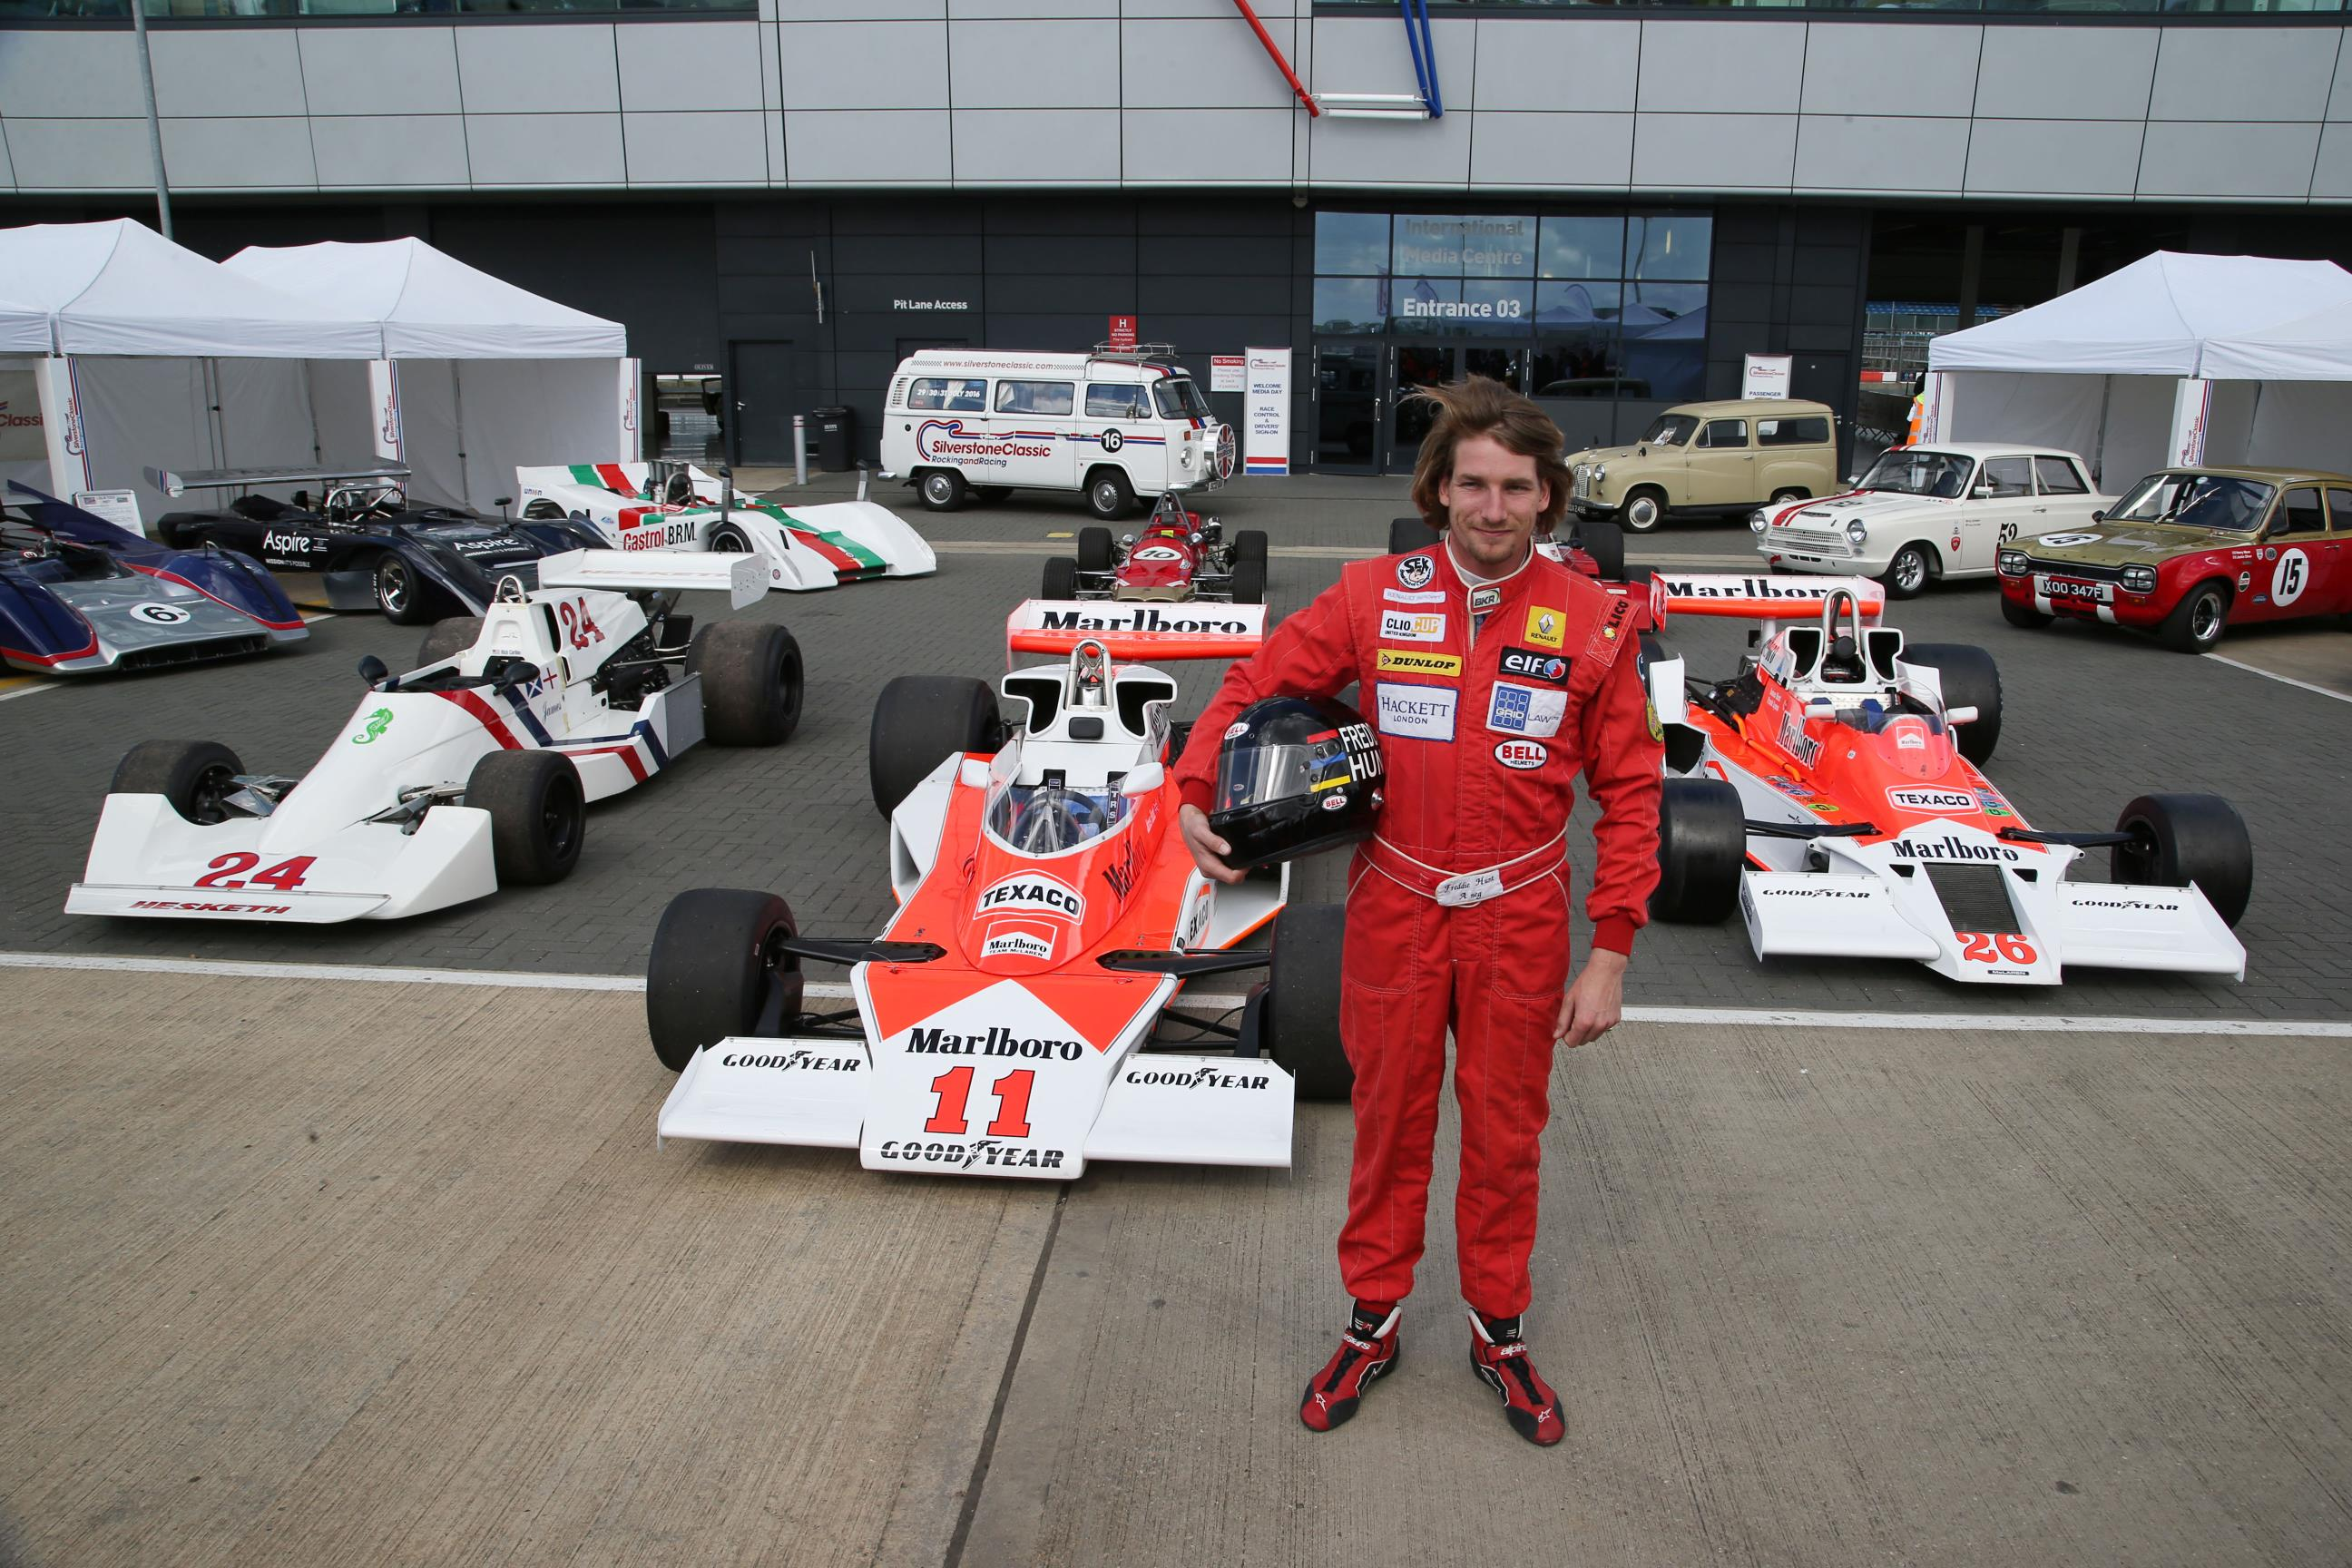 Tribute to James Hunt at Silverstone Classic - Auto Addicts